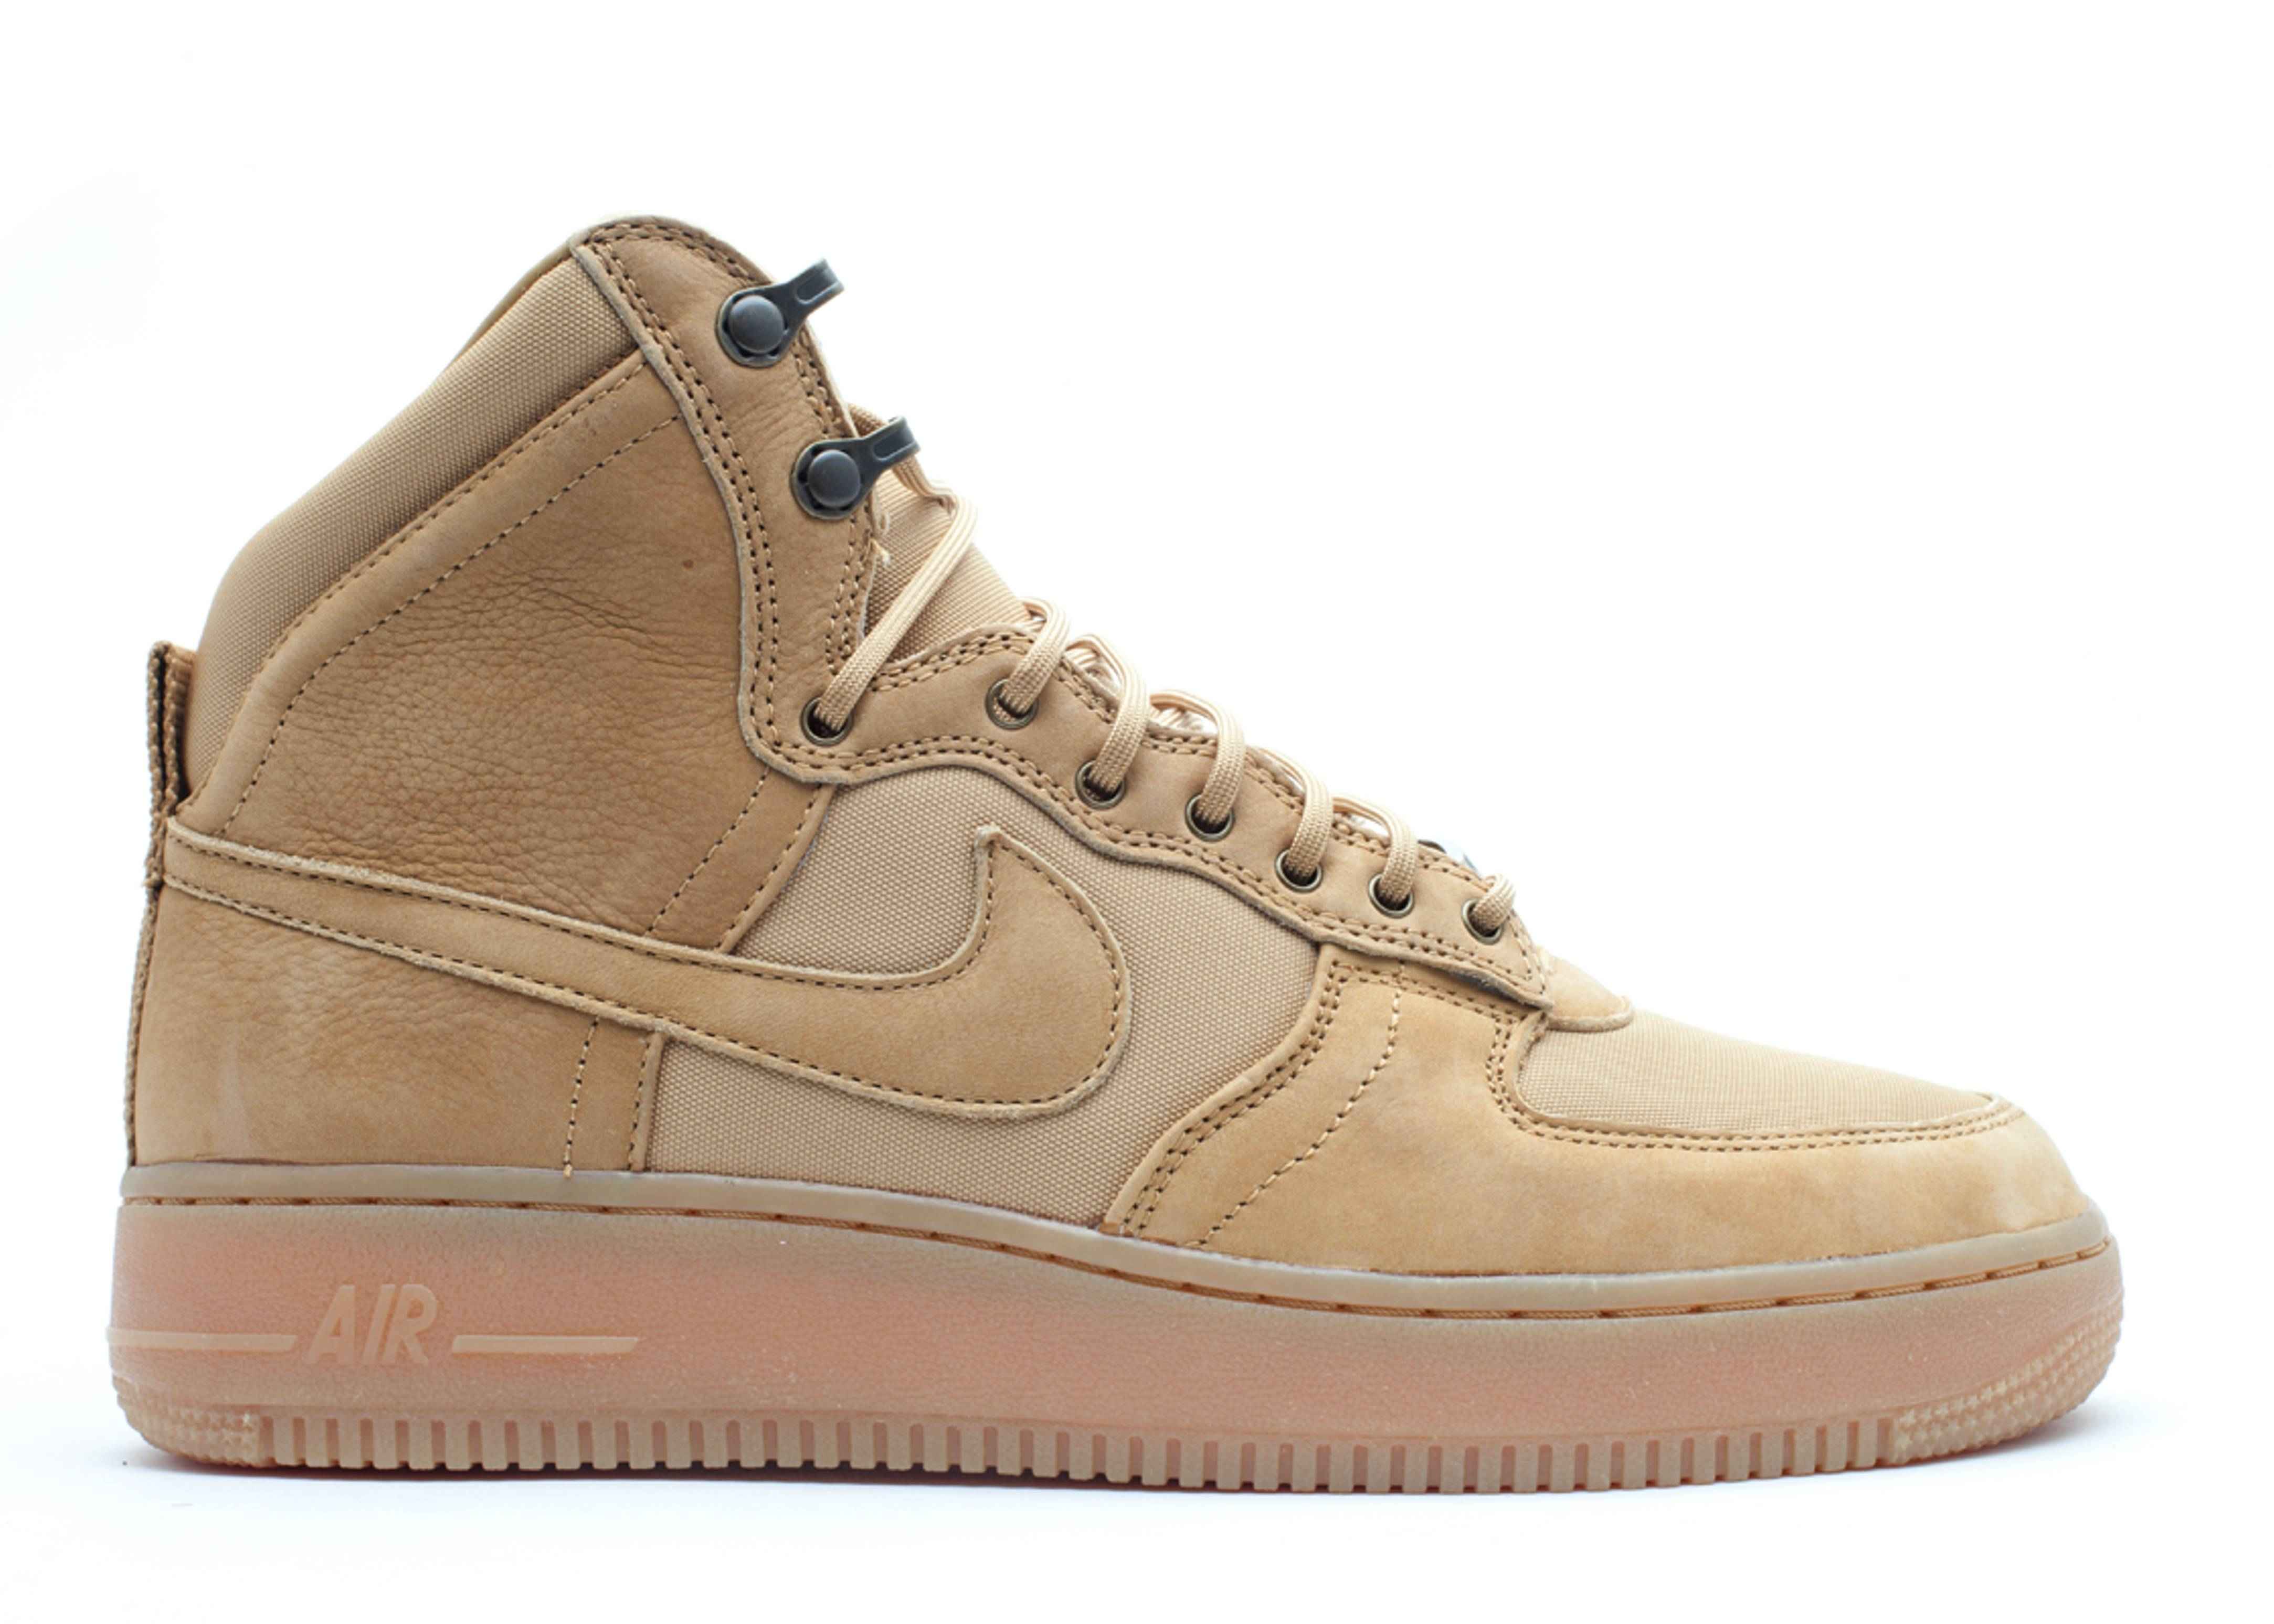 air force 1 hi dcn military bt